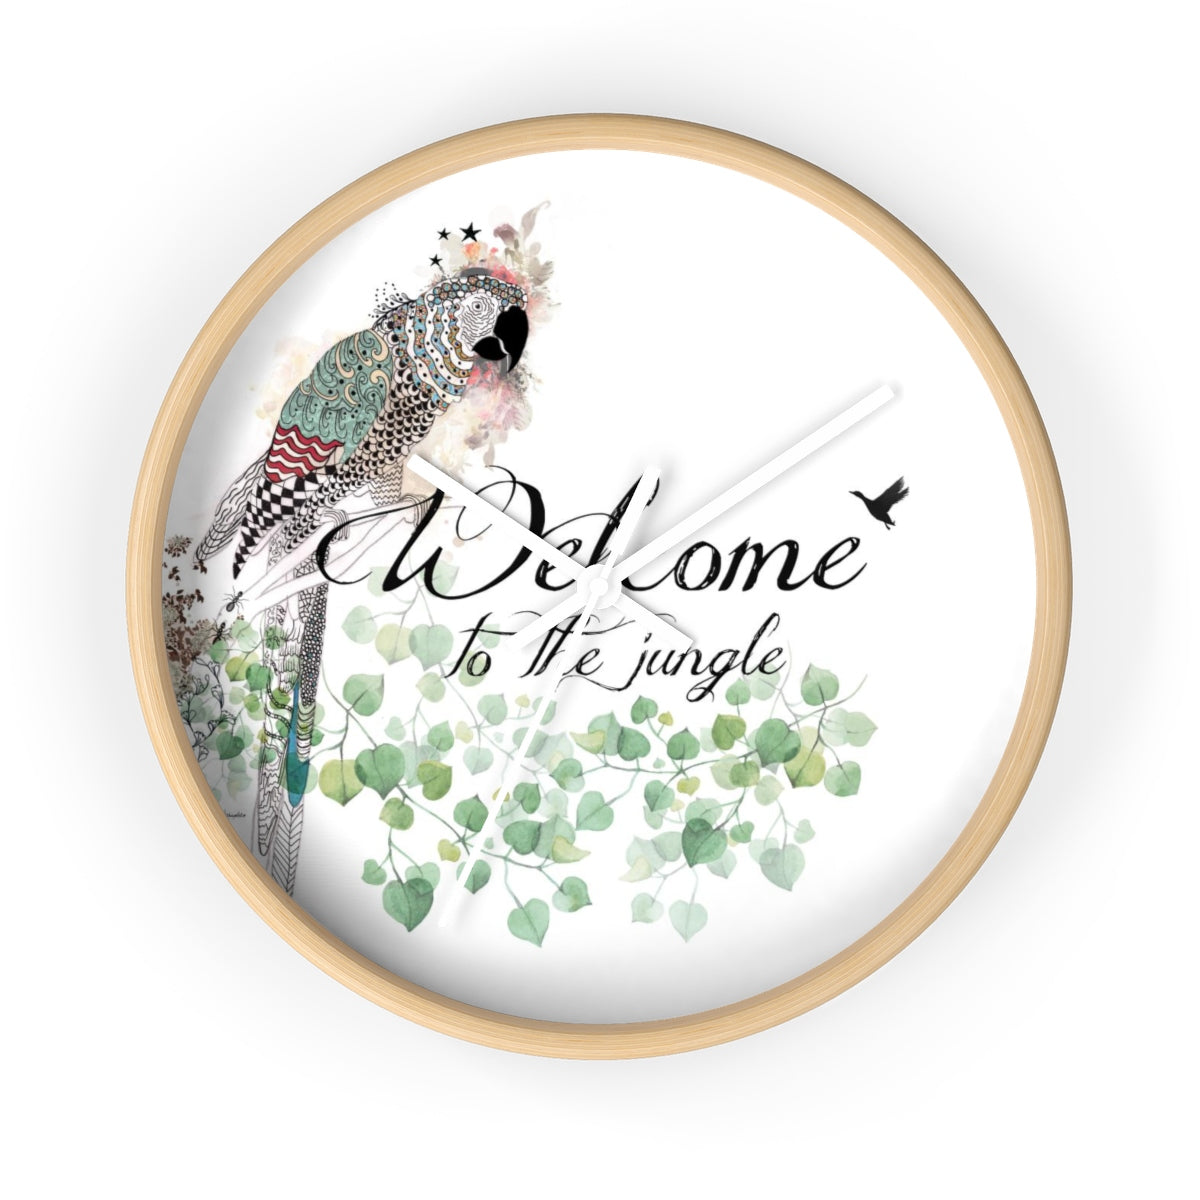 Parrot round, wood wall clock - Liz Kapiloto Art & Design